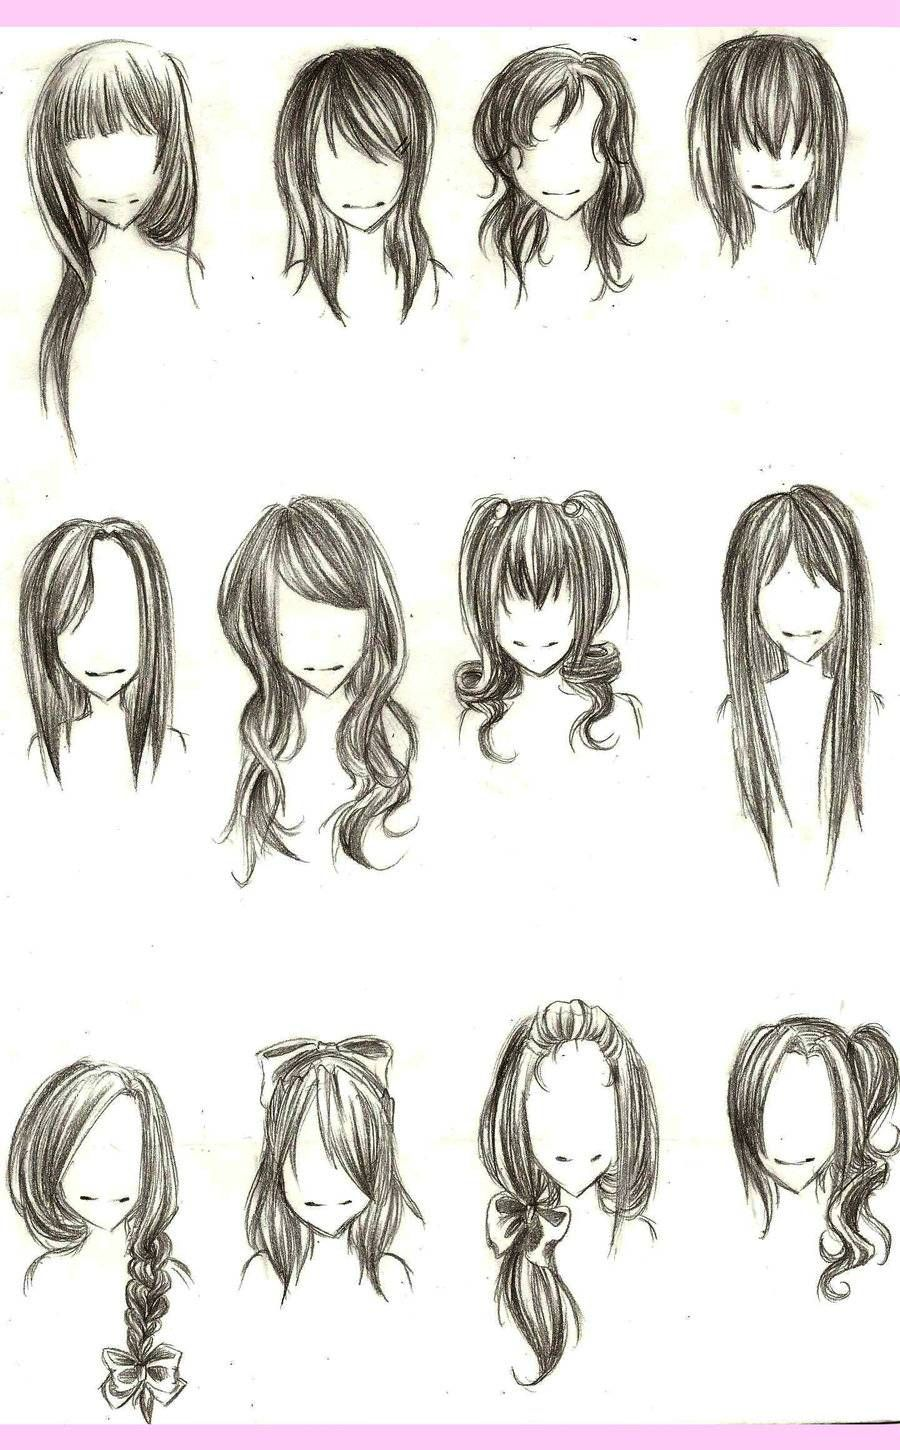 Anime Hairstyles For Girls Sketch Hd Images 3 Hd Wallpapers Haare Zeichnen Anime Haare Haare Skizze